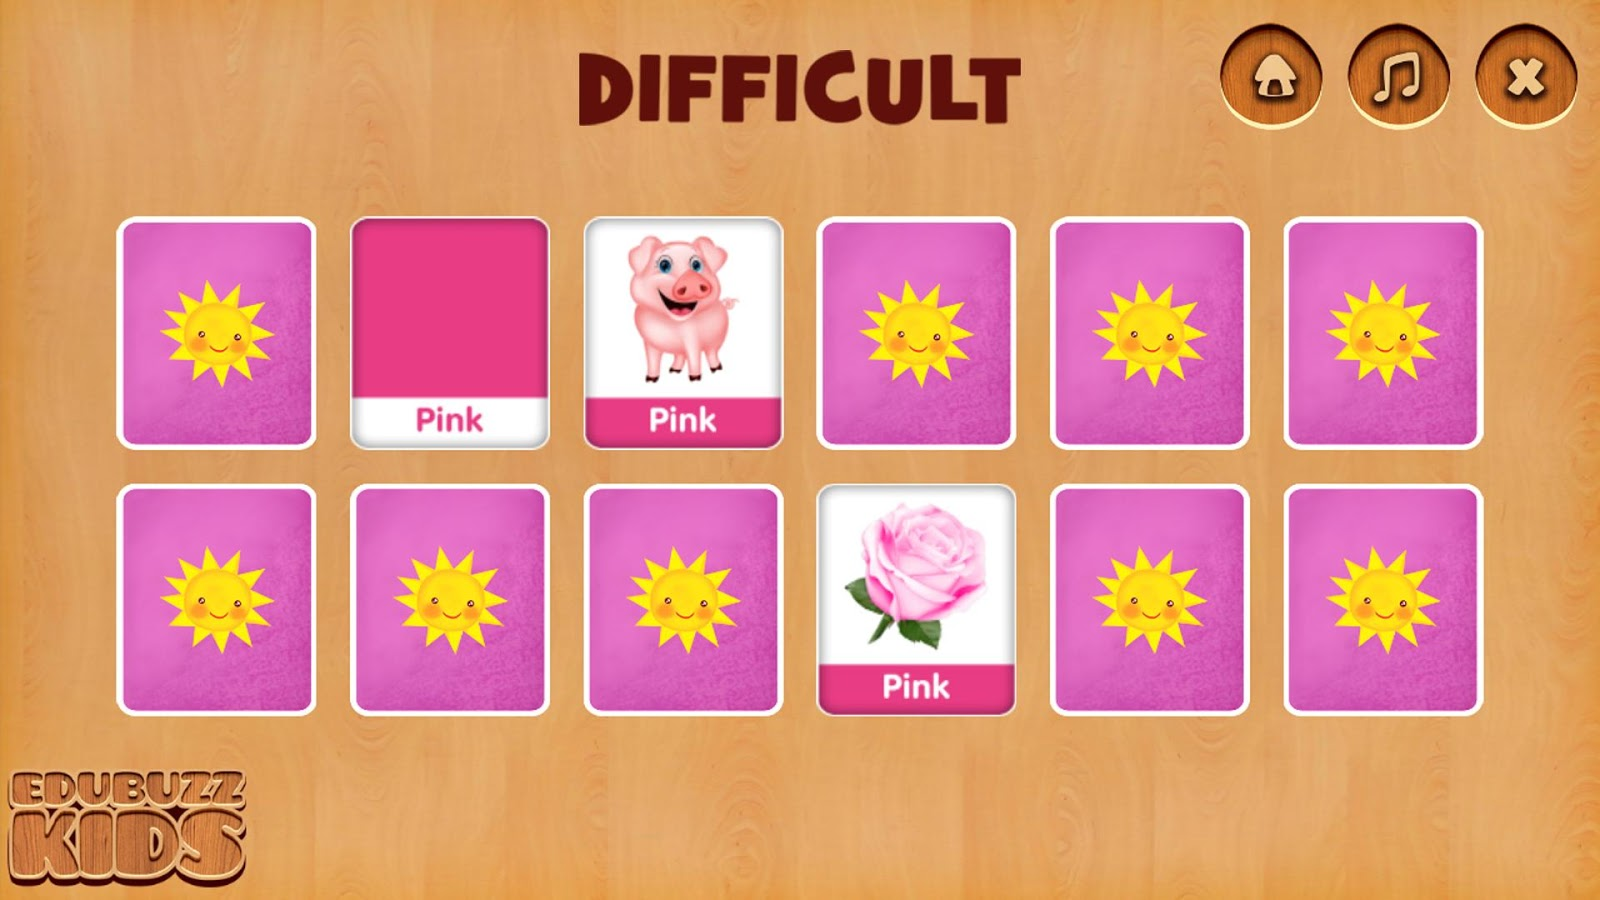 Game for colors - Colors Matching Game For Kids Screenshot